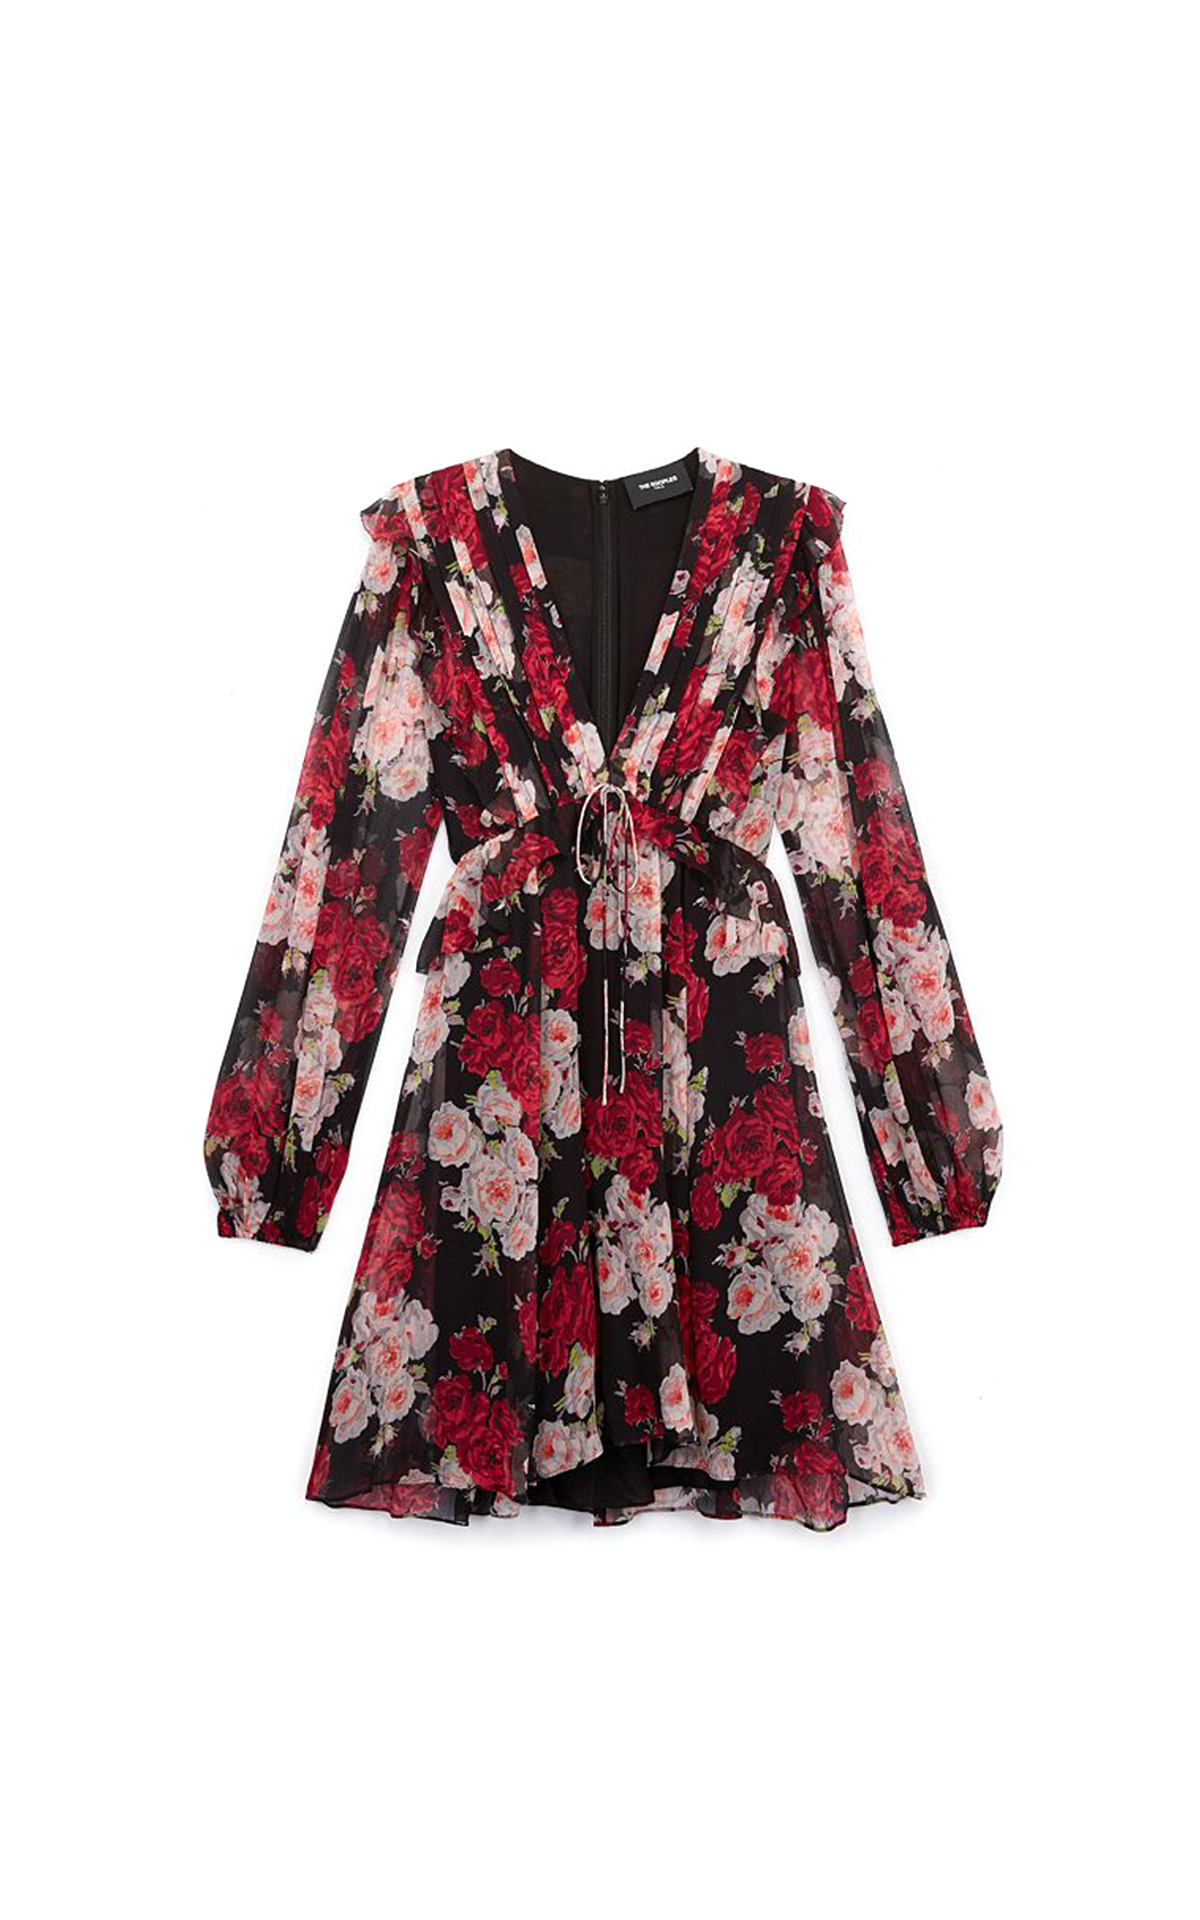 Flowered dress The Kooples